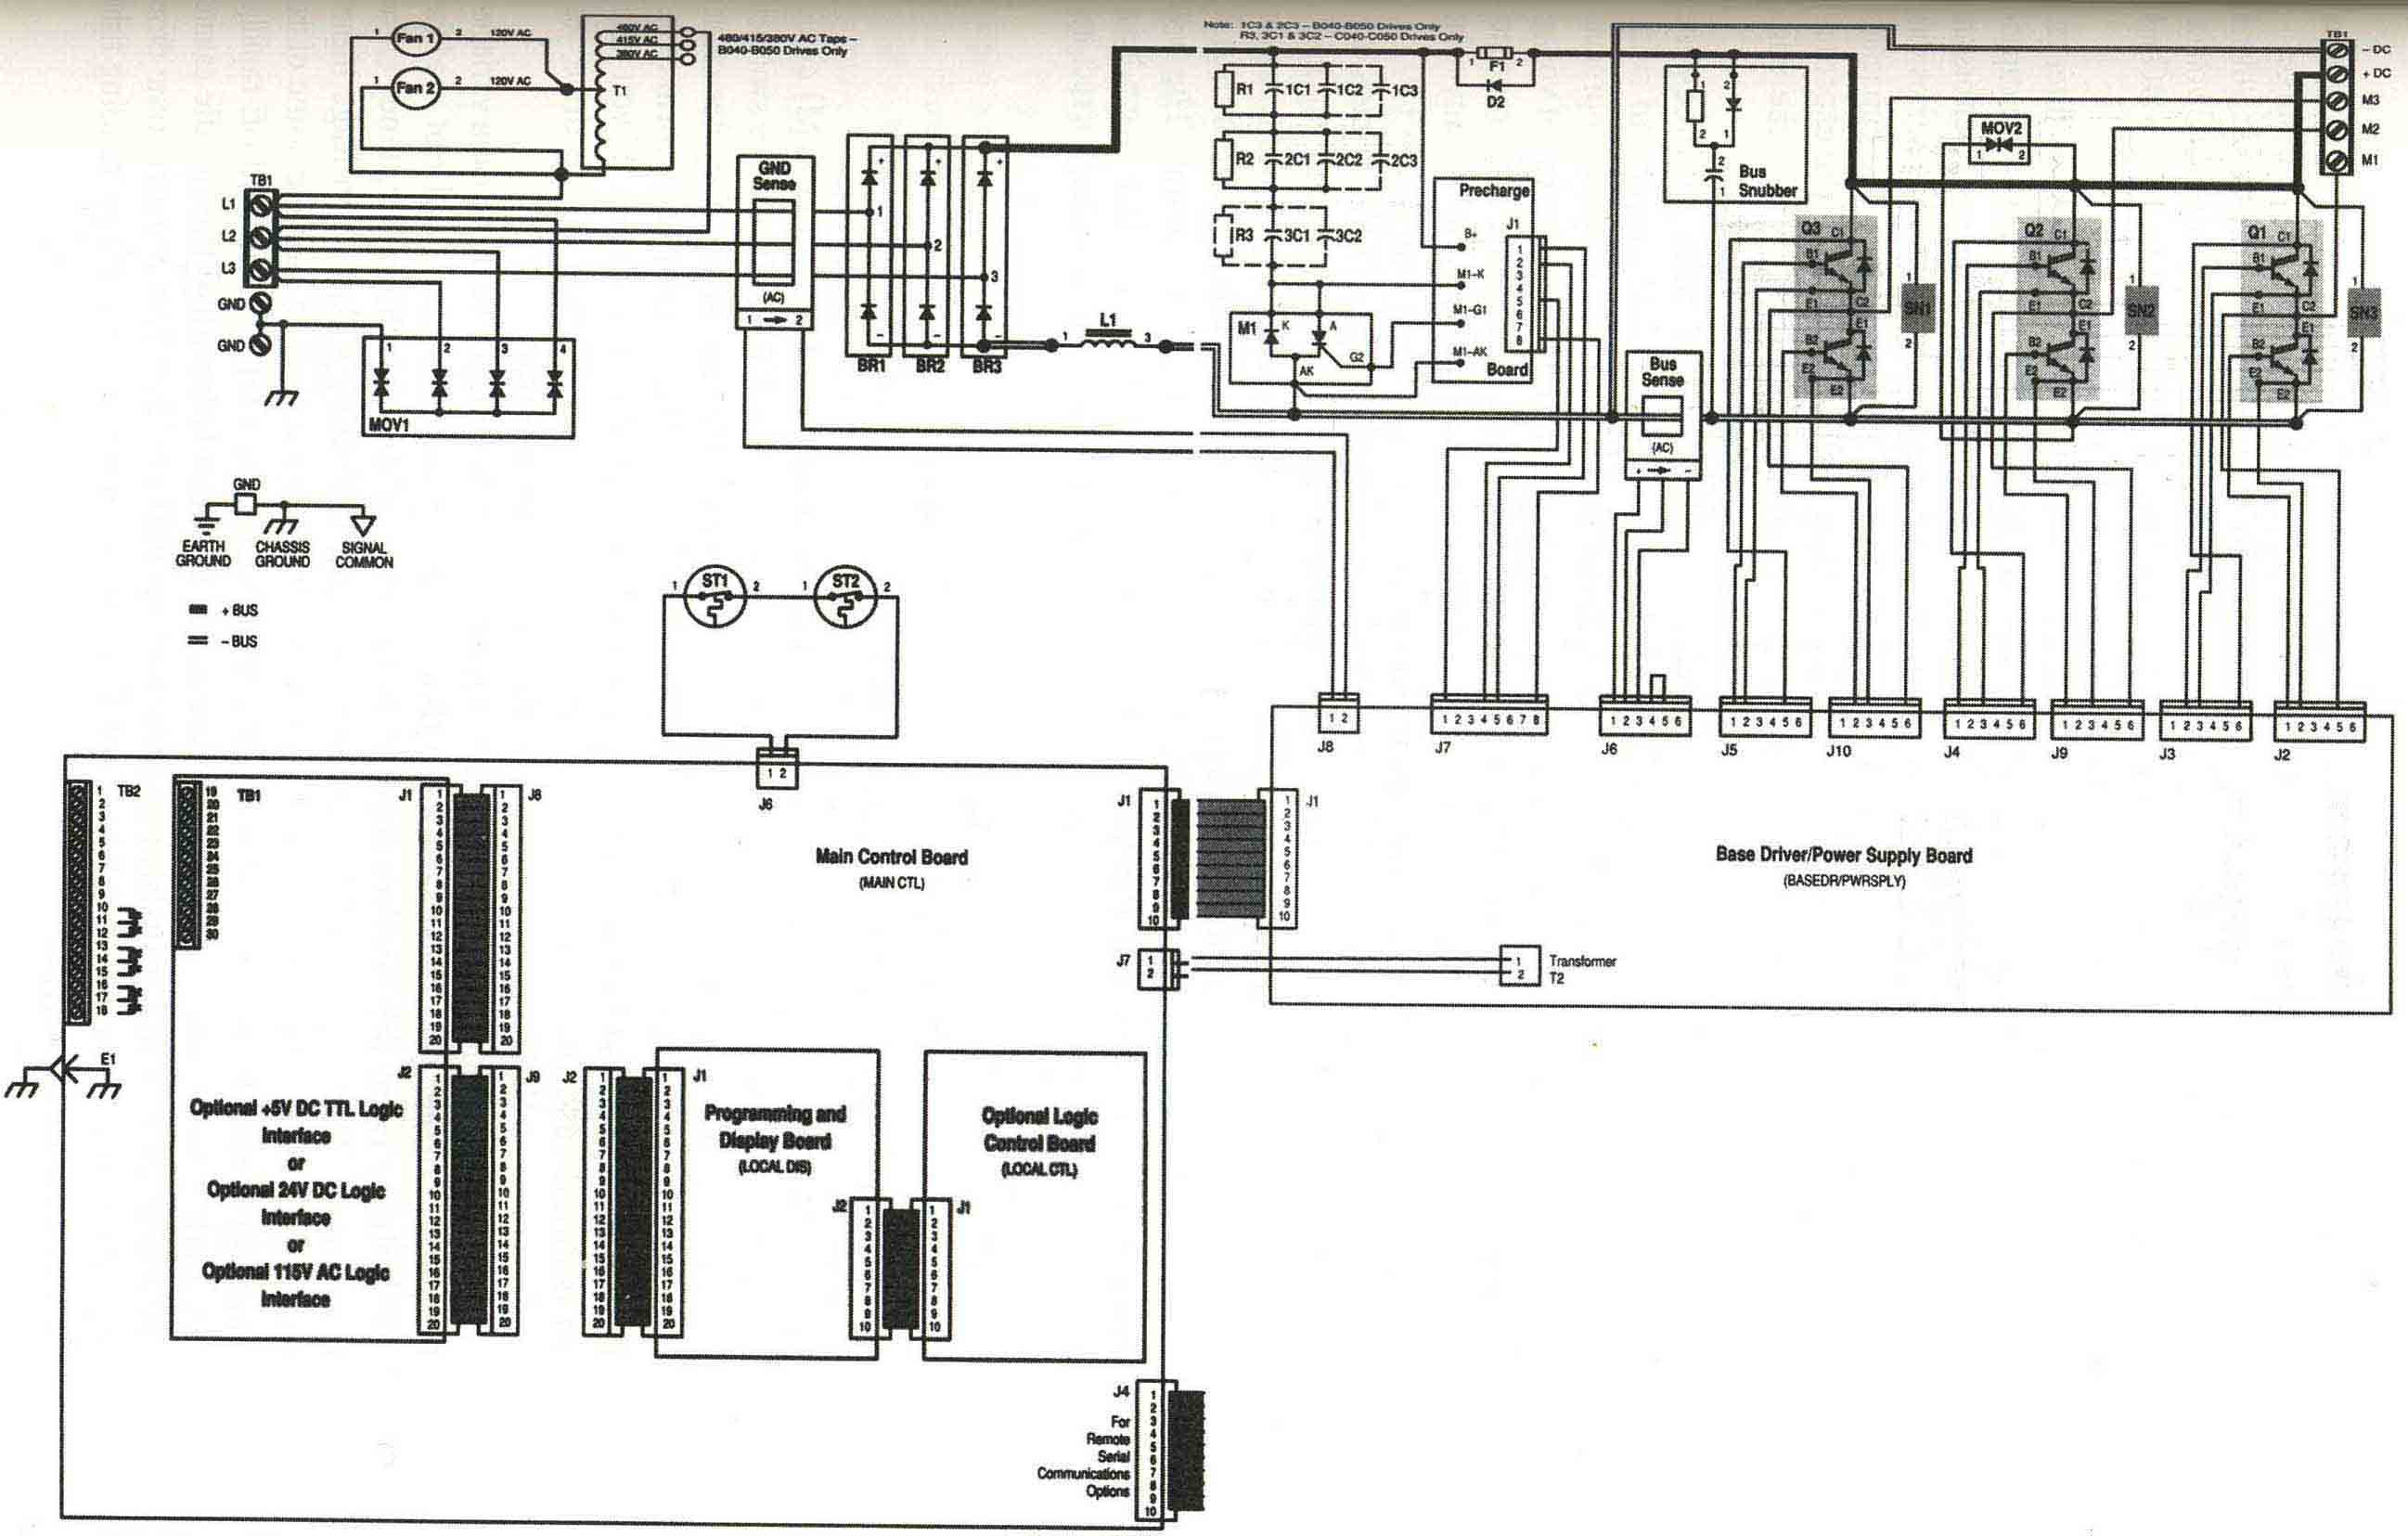 Danfoss Wiring Diagram Y Plan Vfd Pump Schematic Will Be A Thing Solid State Circuits For Variable Frequency Drives Chinese